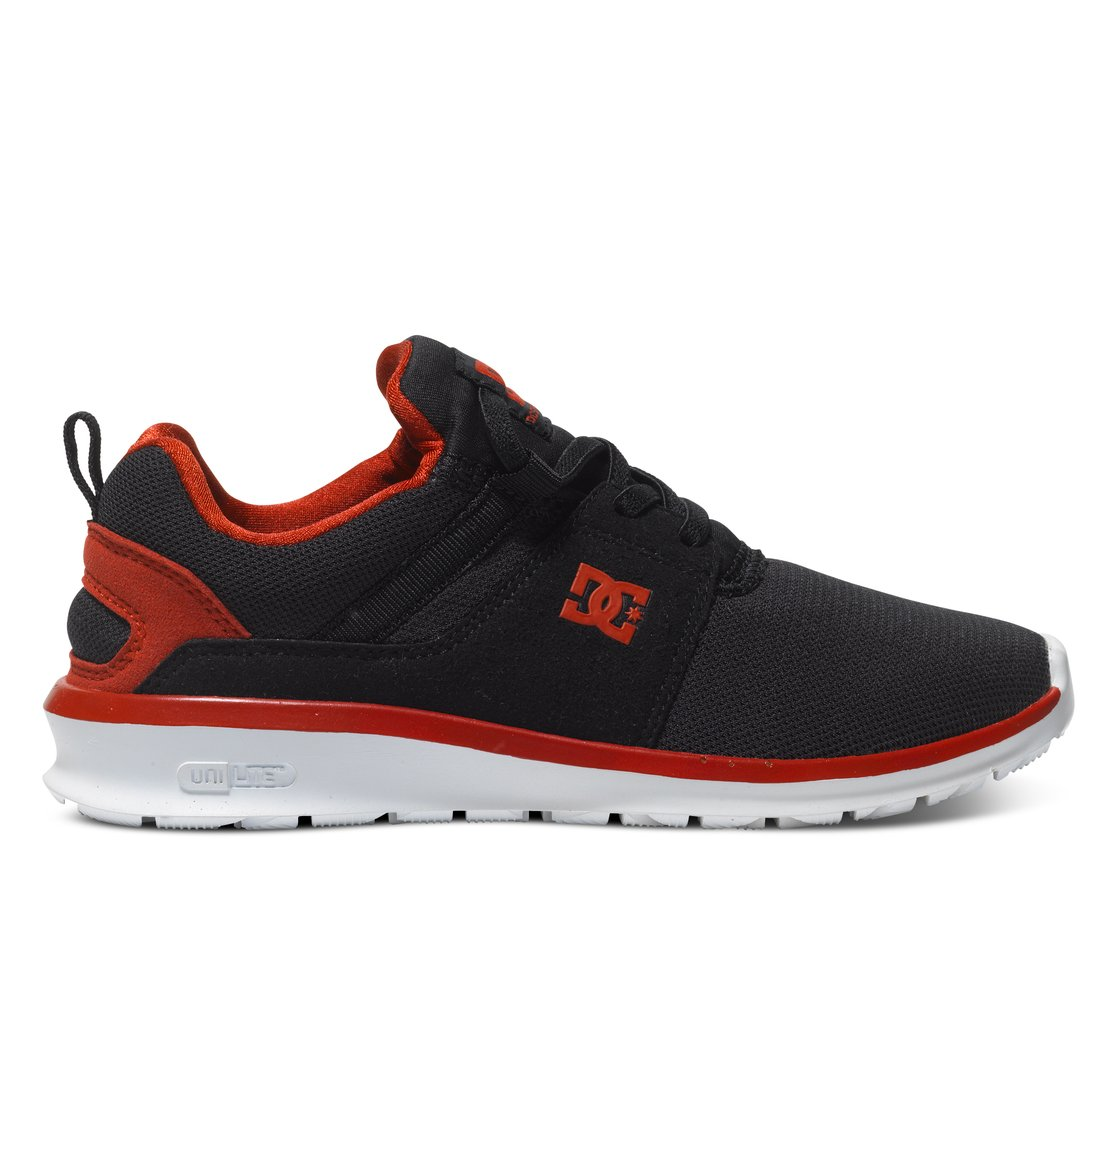 kid 39 s heathrow shoes adbs700025 dc shoes. Black Bedroom Furniture Sets. Home Design Ideas